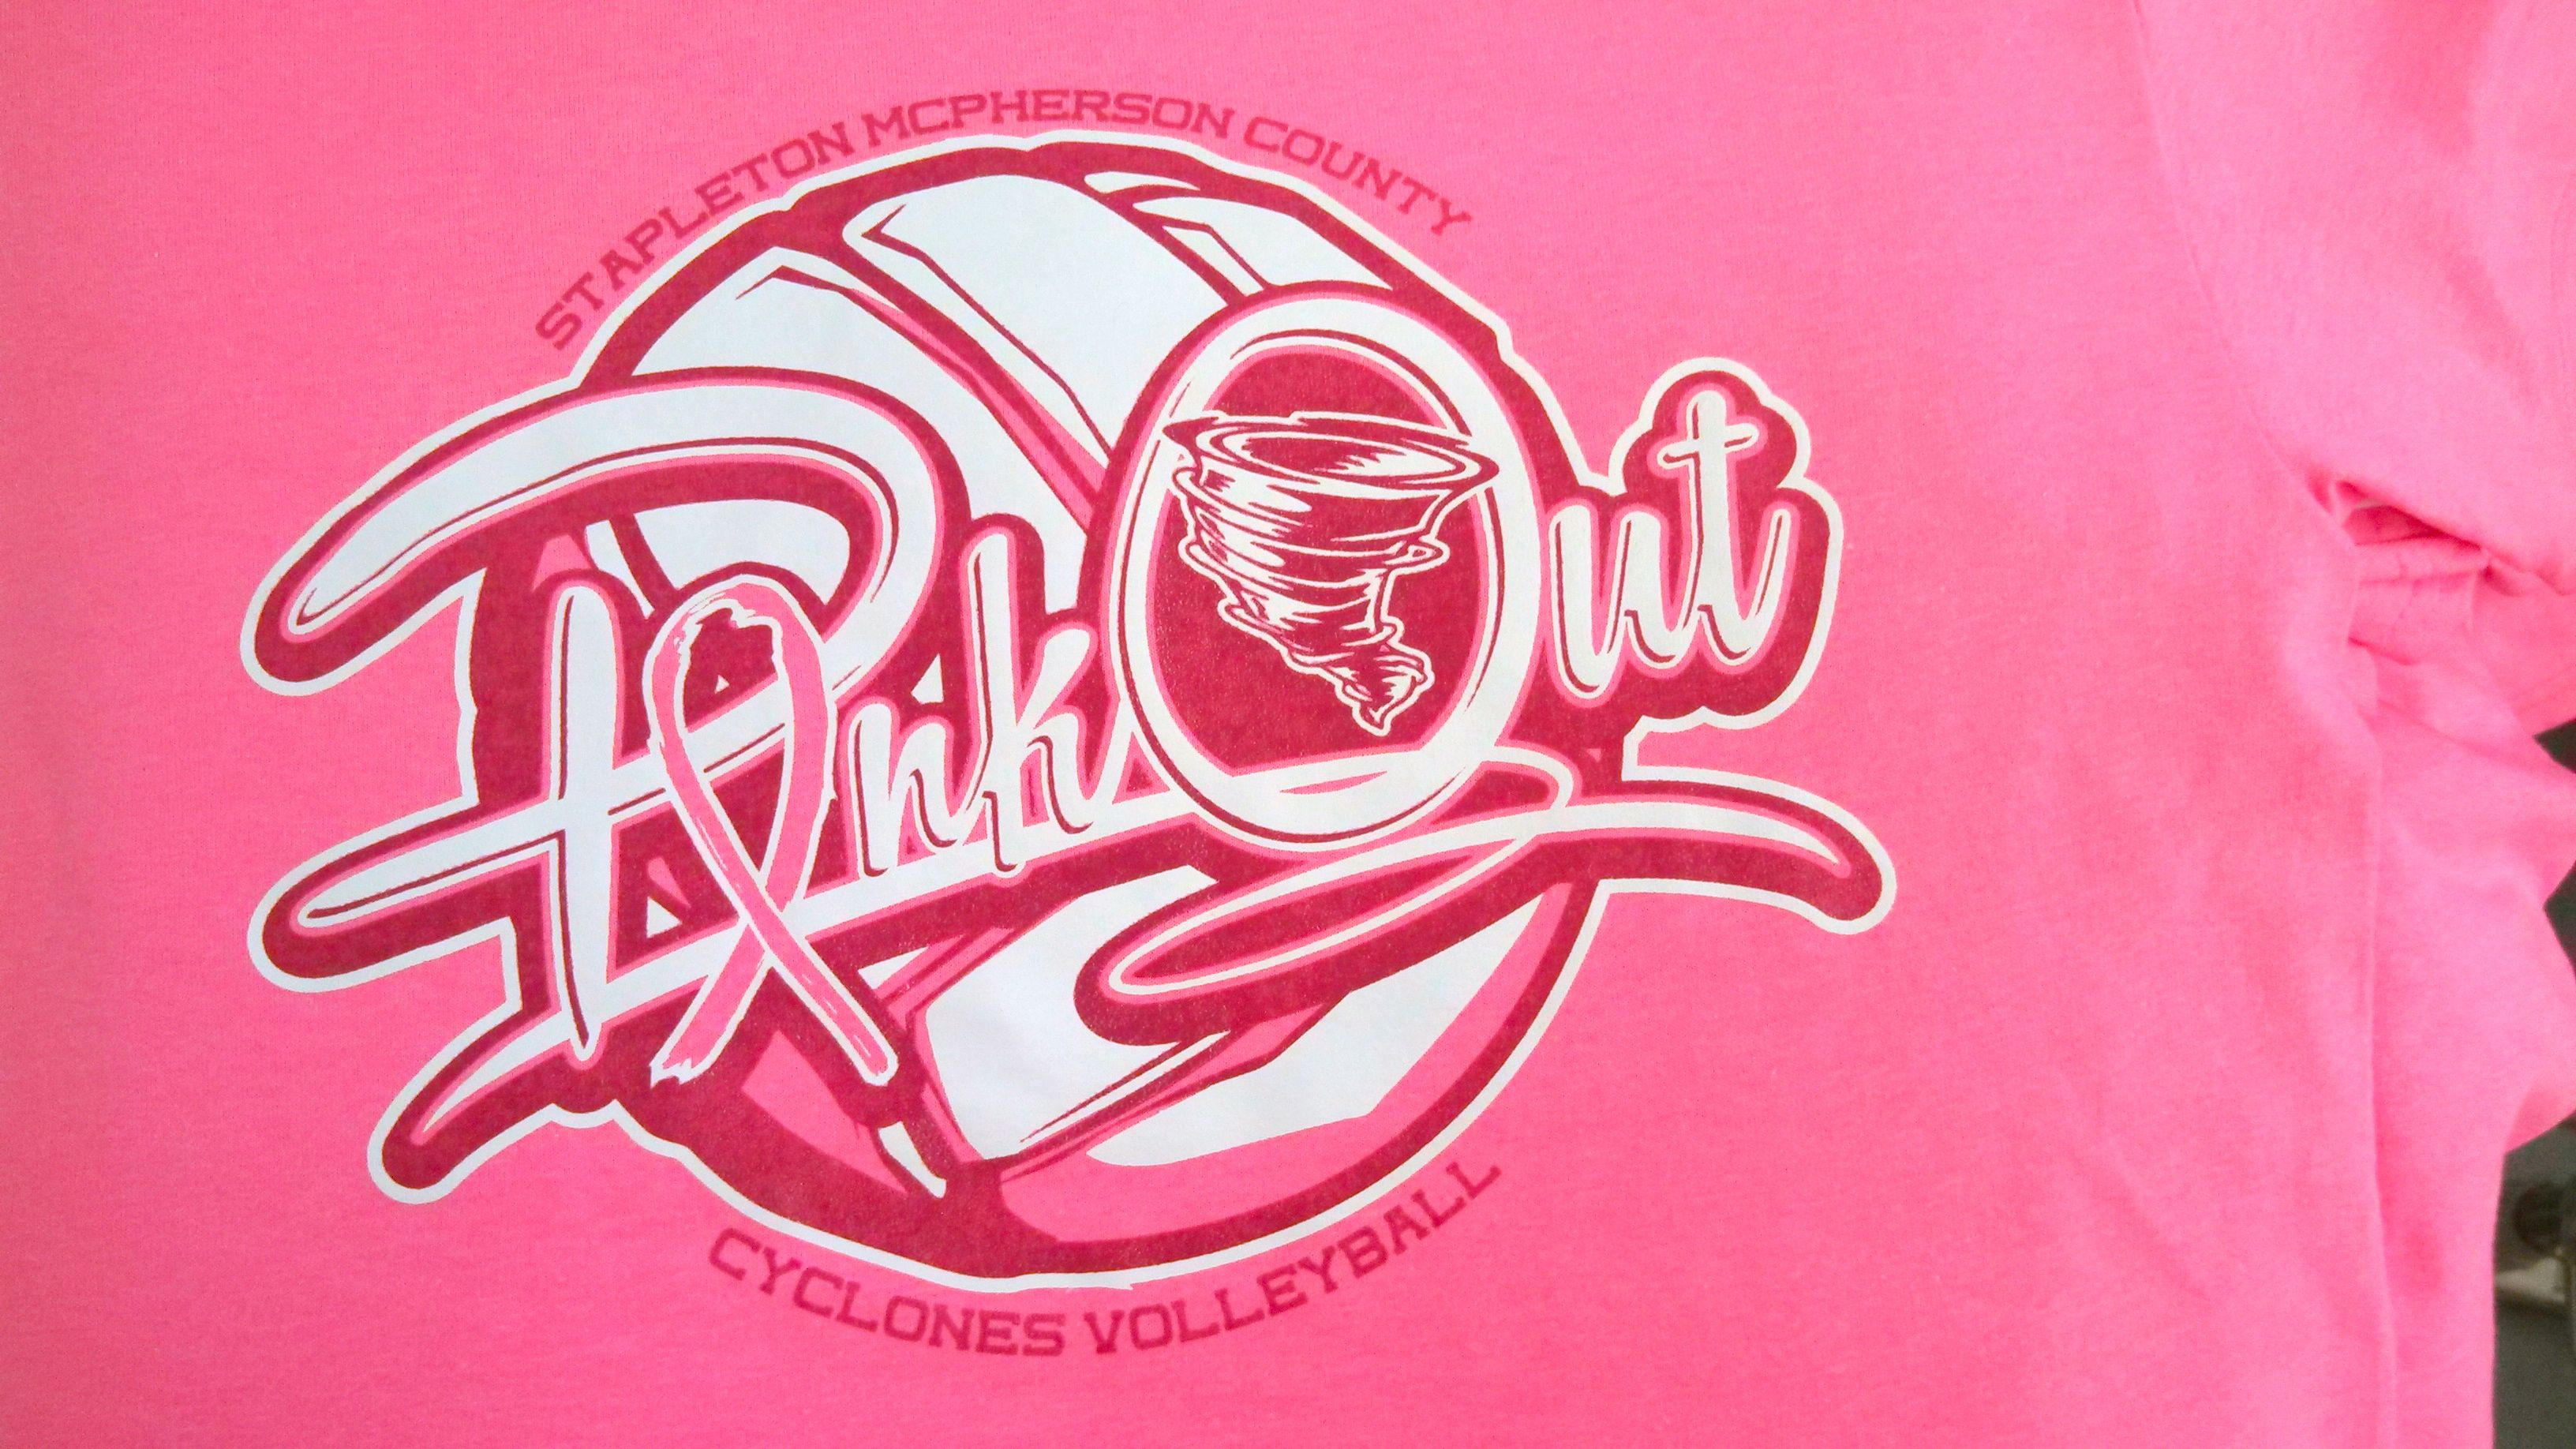 SMC - Stapleton McPherson County - Pink Out - Breast Cancer ...